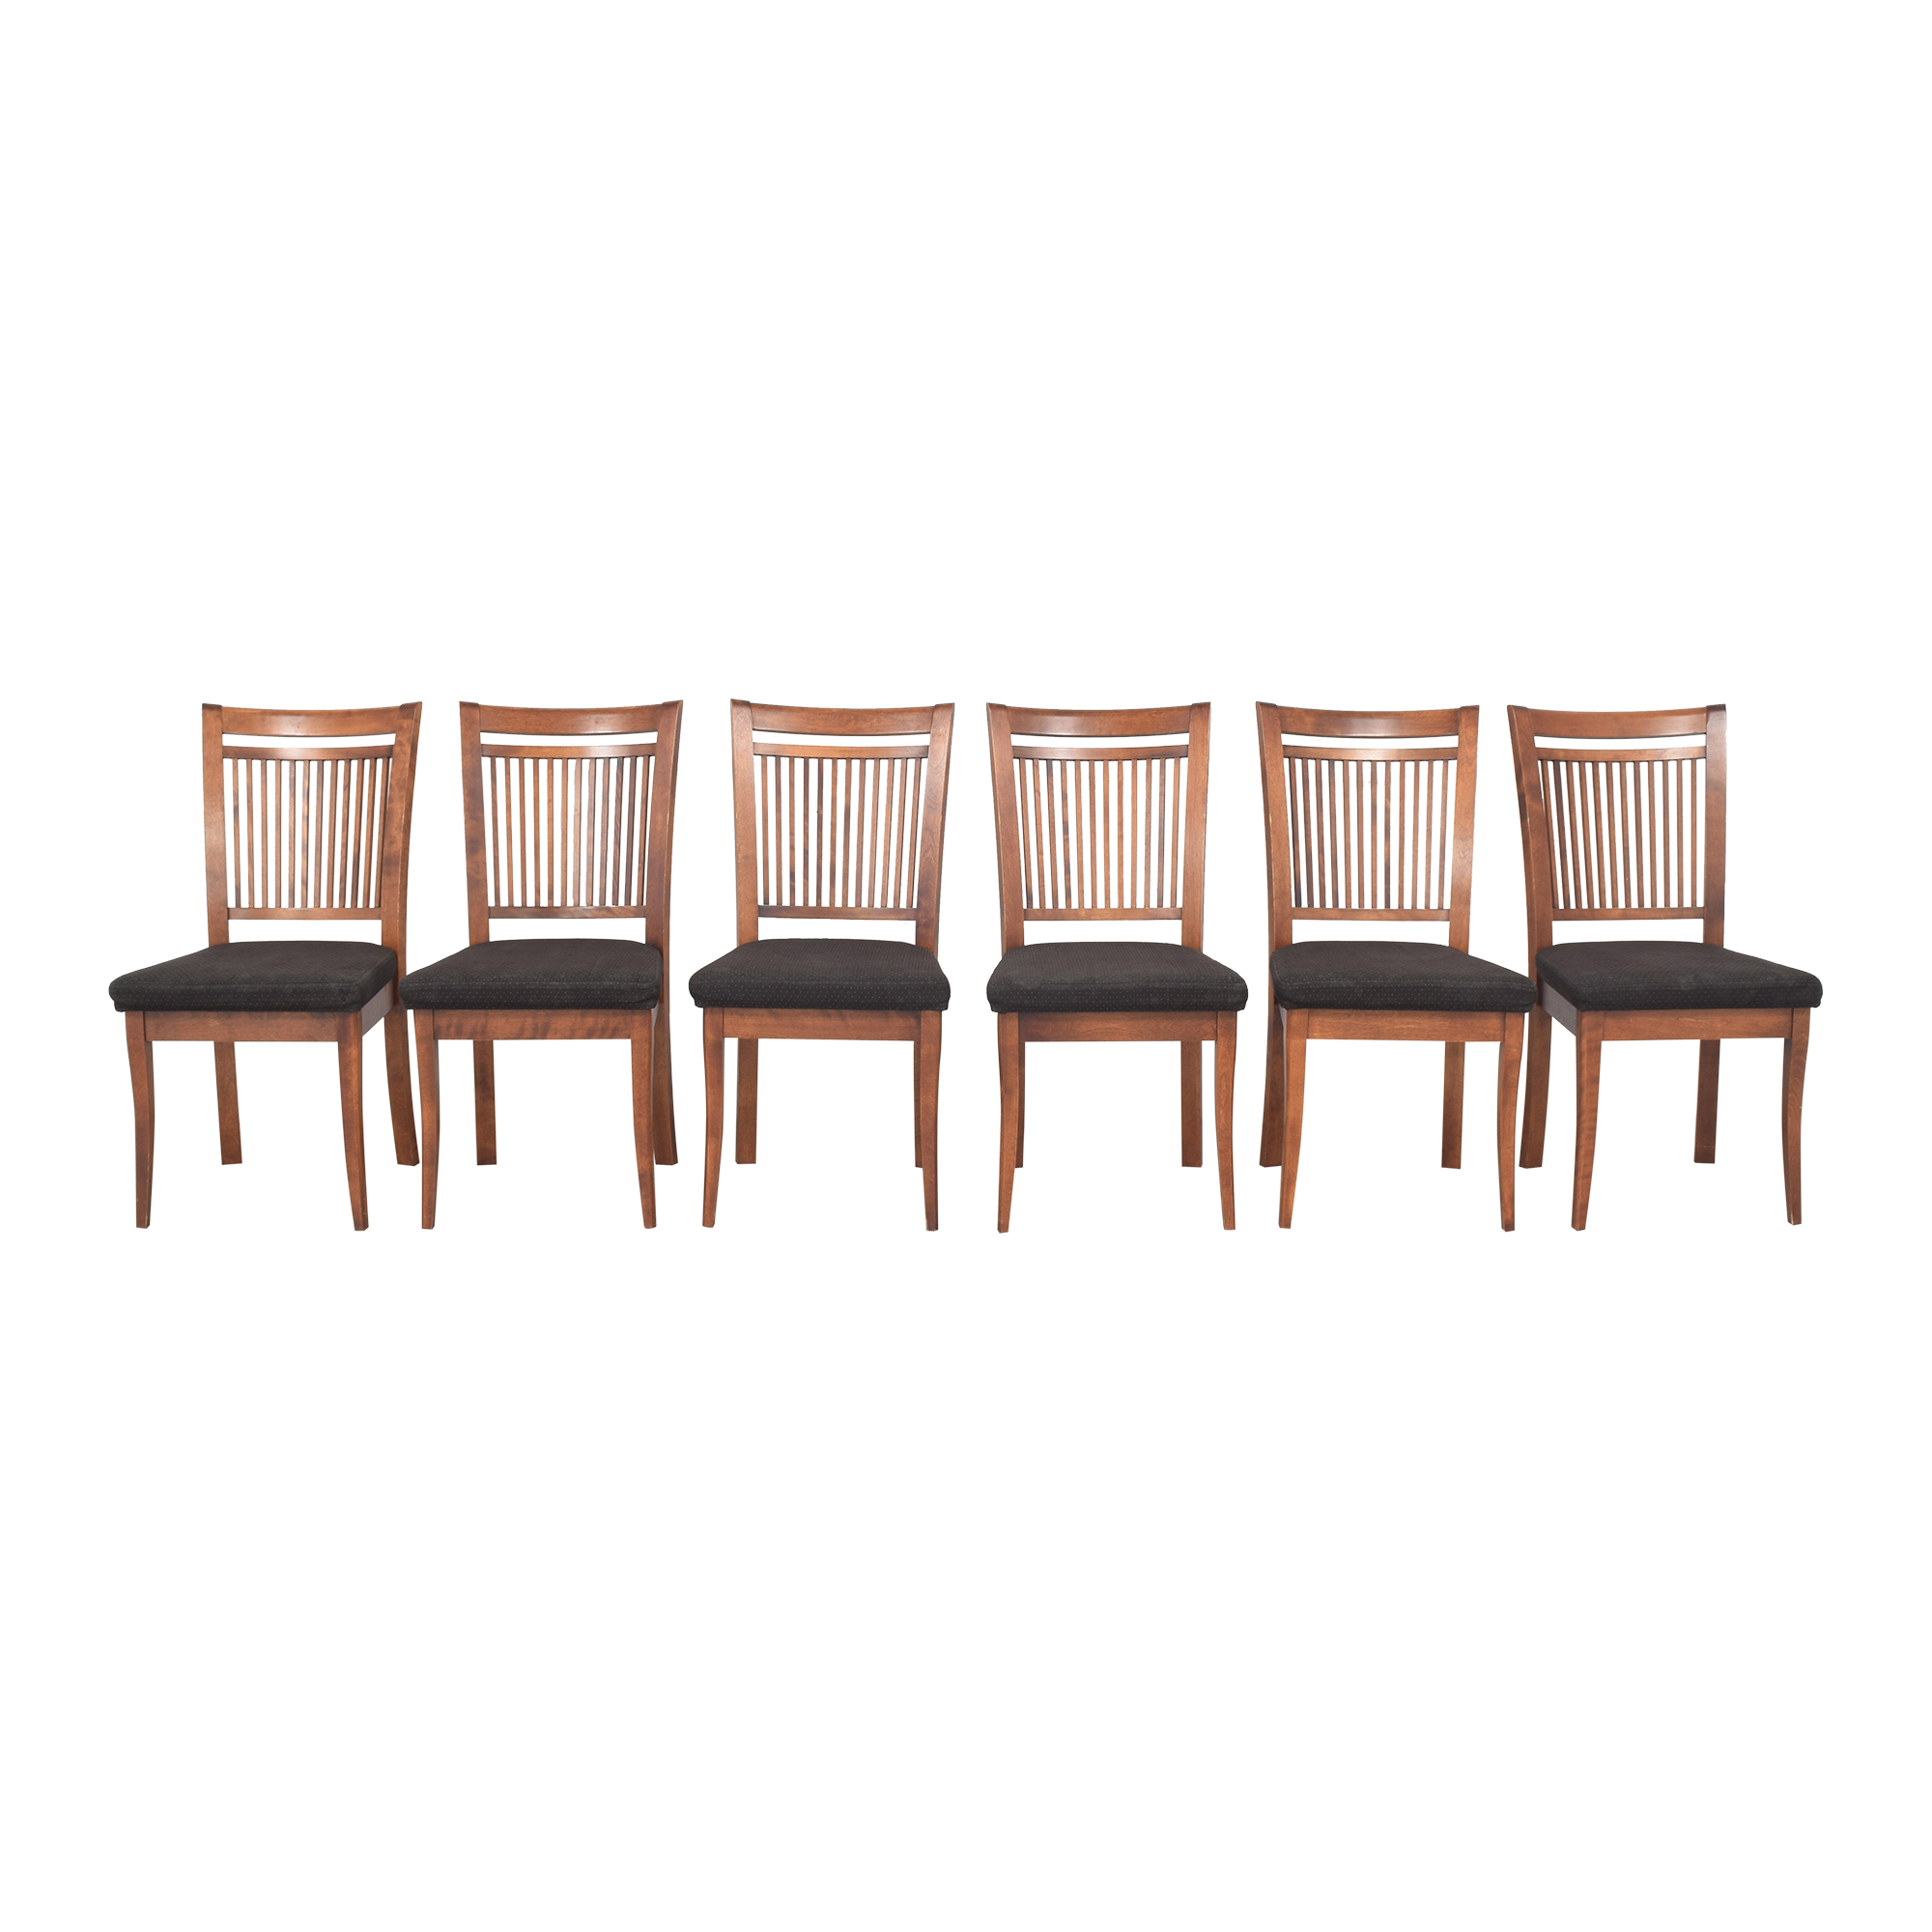 Dinec Dinec Slat Back Dining Chairs ma